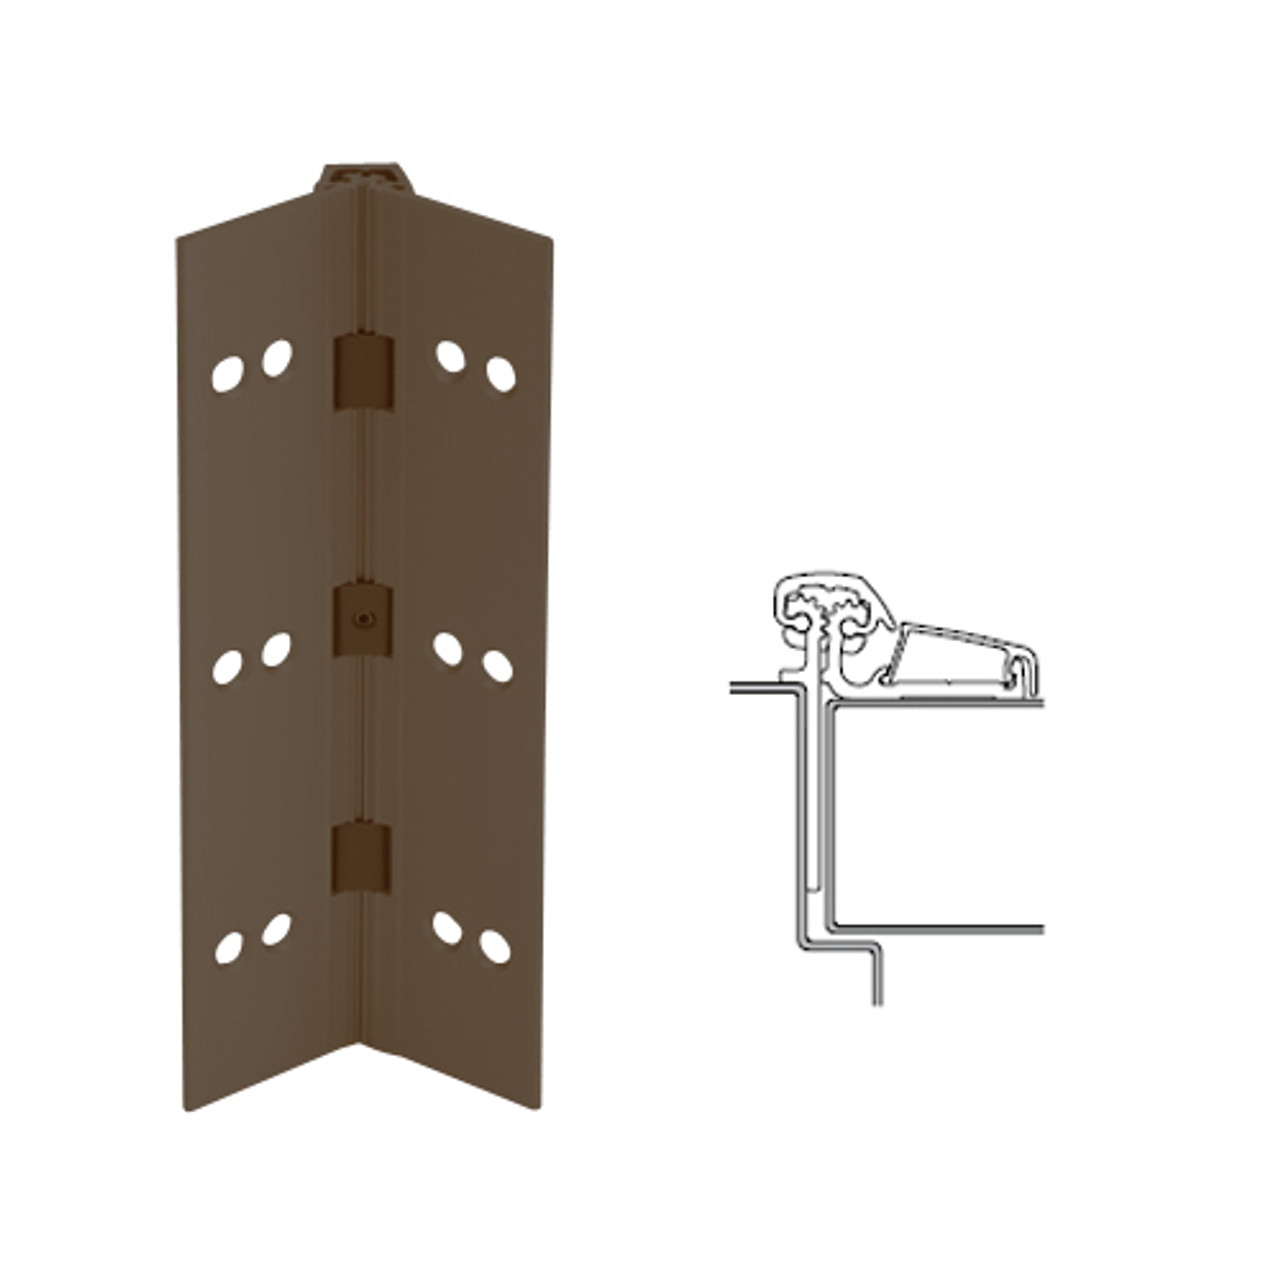 053XY-313AN-95-TEKWD IVES Adjustable Half Surface Continuous Geared Hinges with Wood Screws in Dark Bronze Anodized